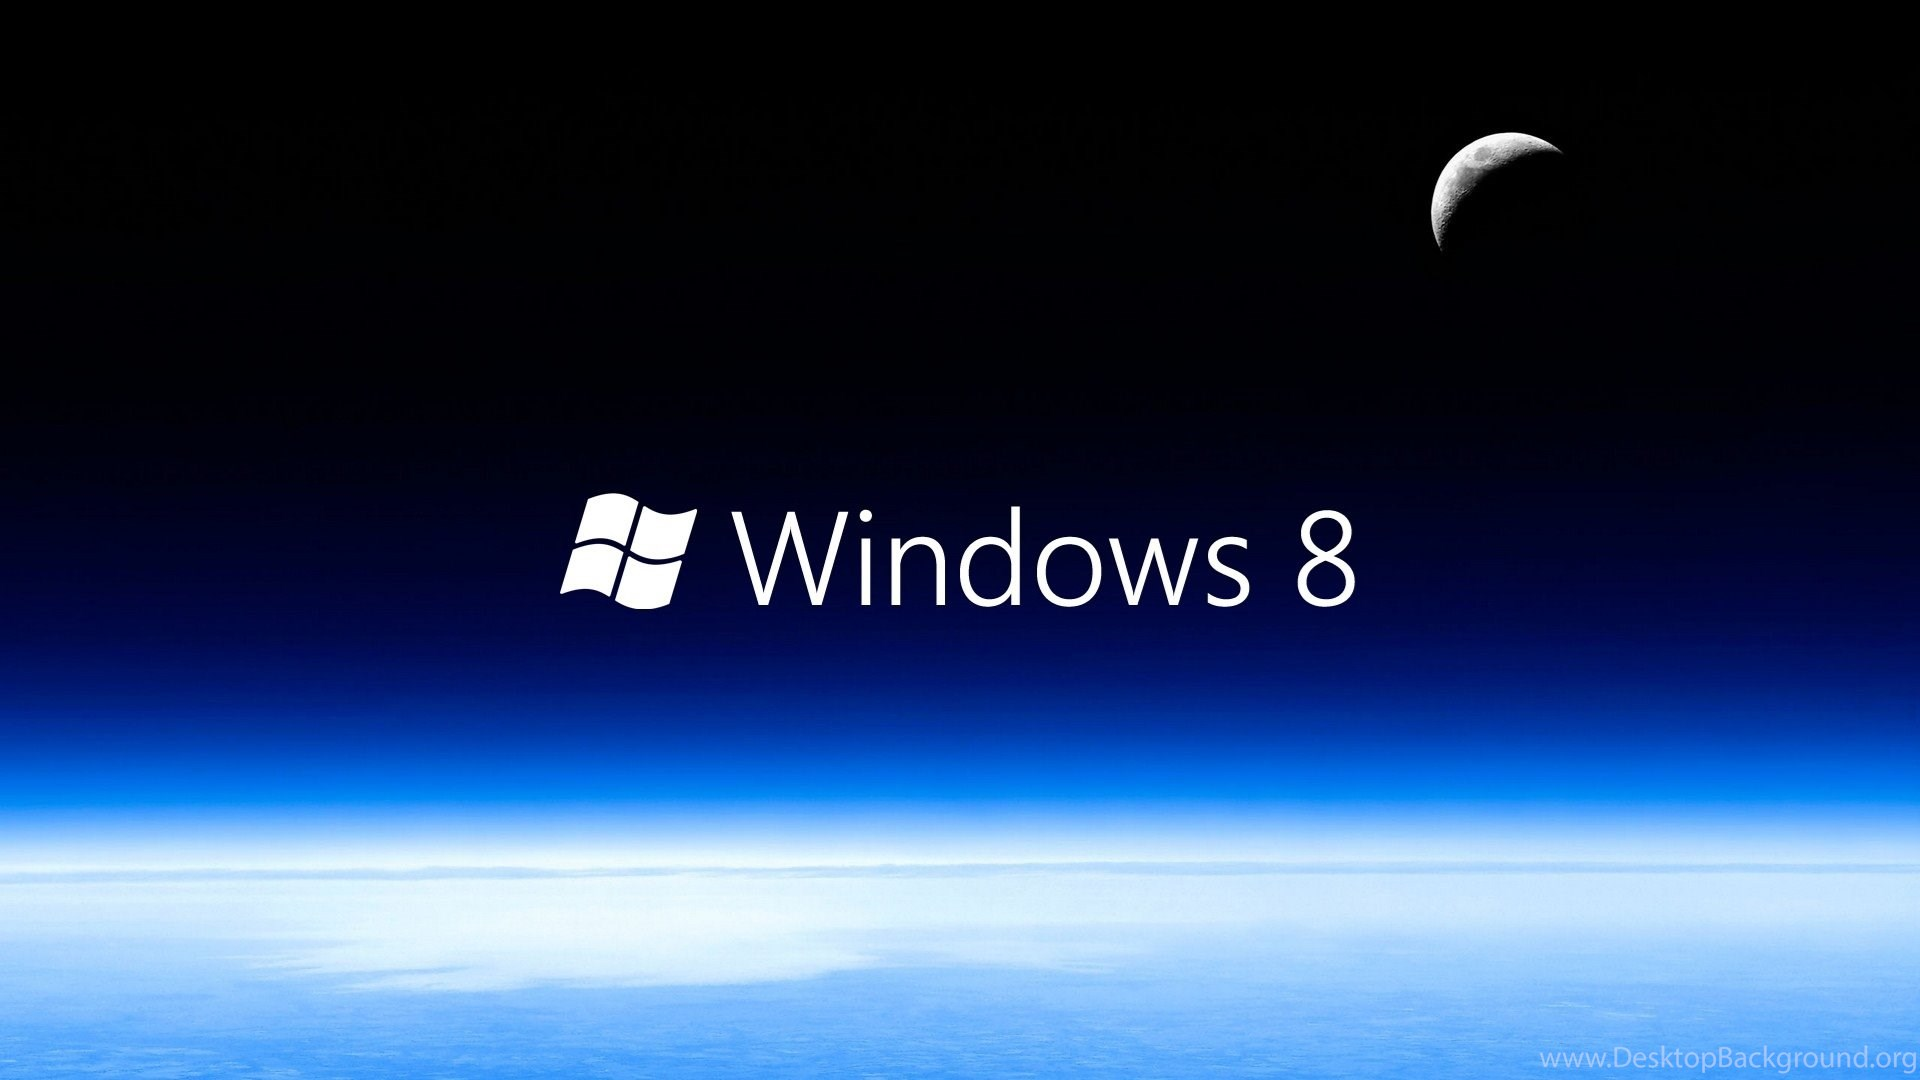 windows 8 wallpaper hd 3d for desktop blue i11 desktop background